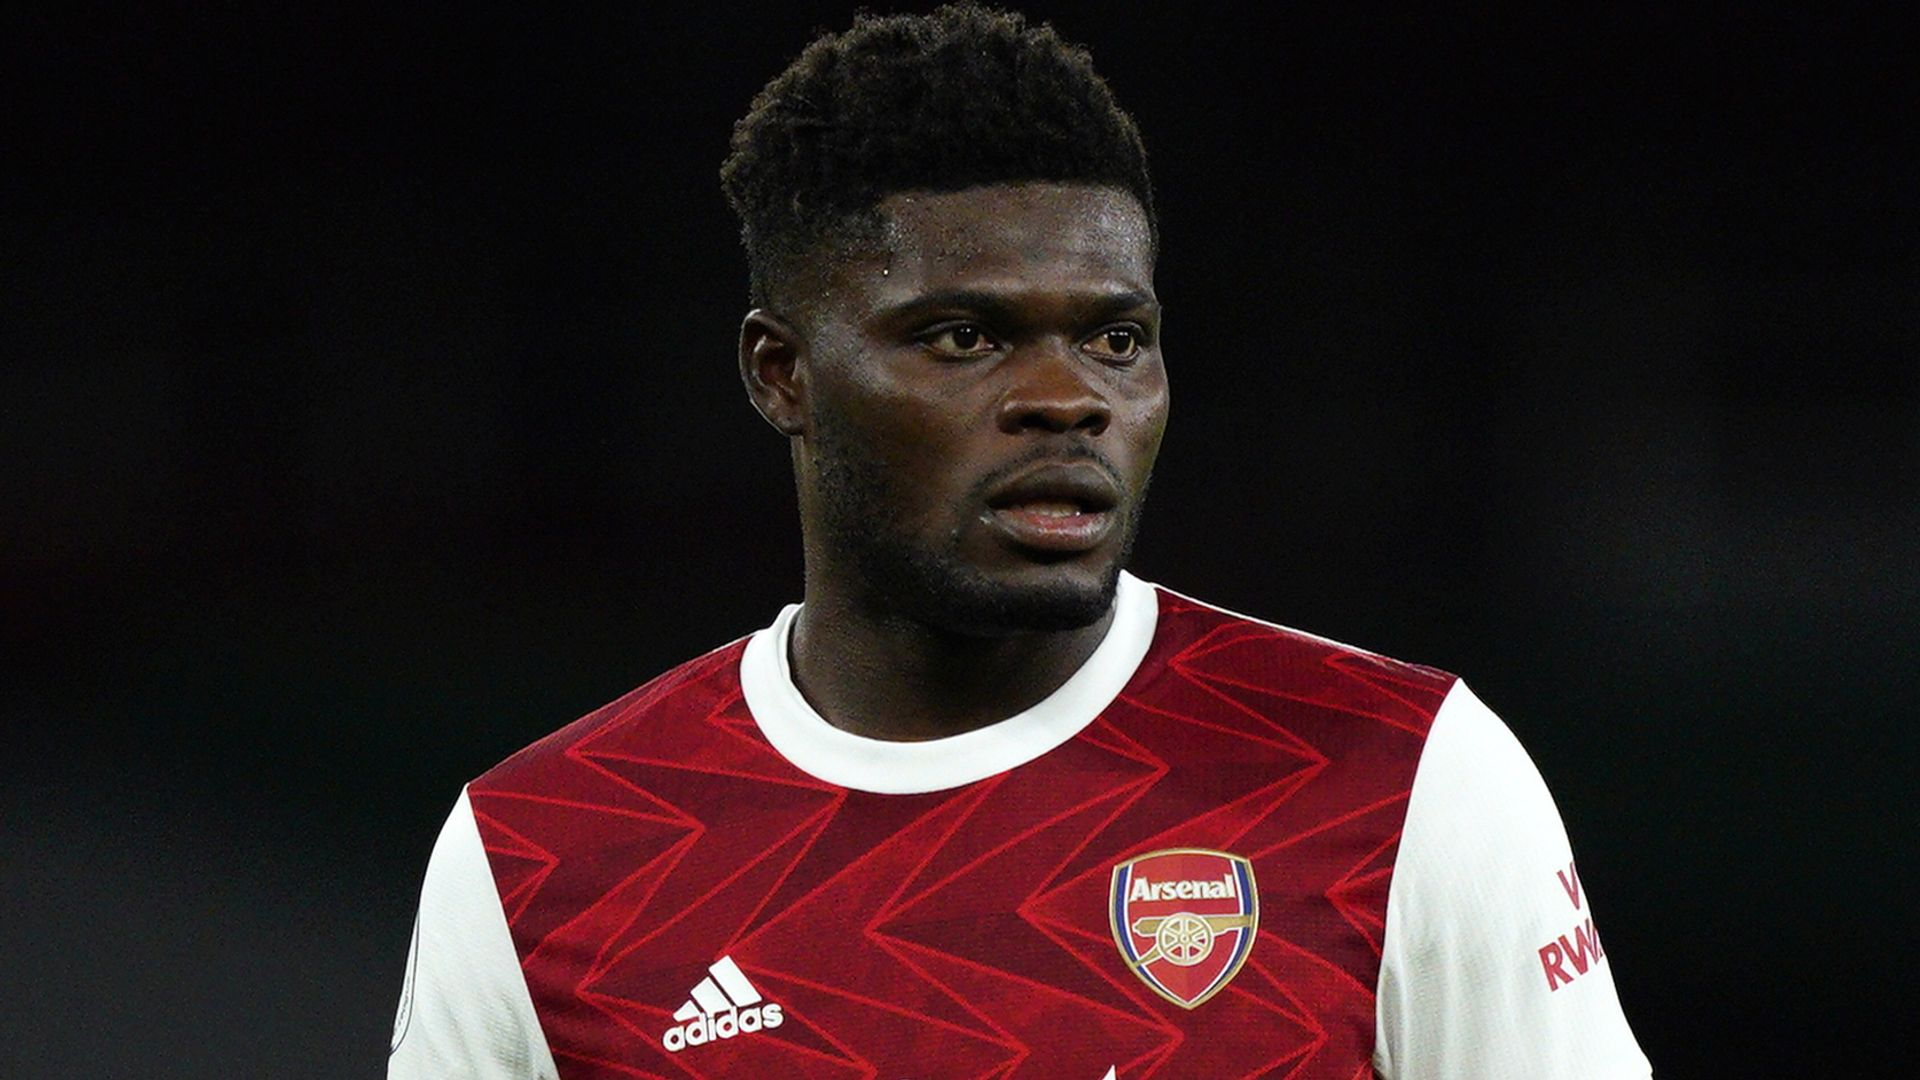 Arteta: Partey was not rushed back from injury